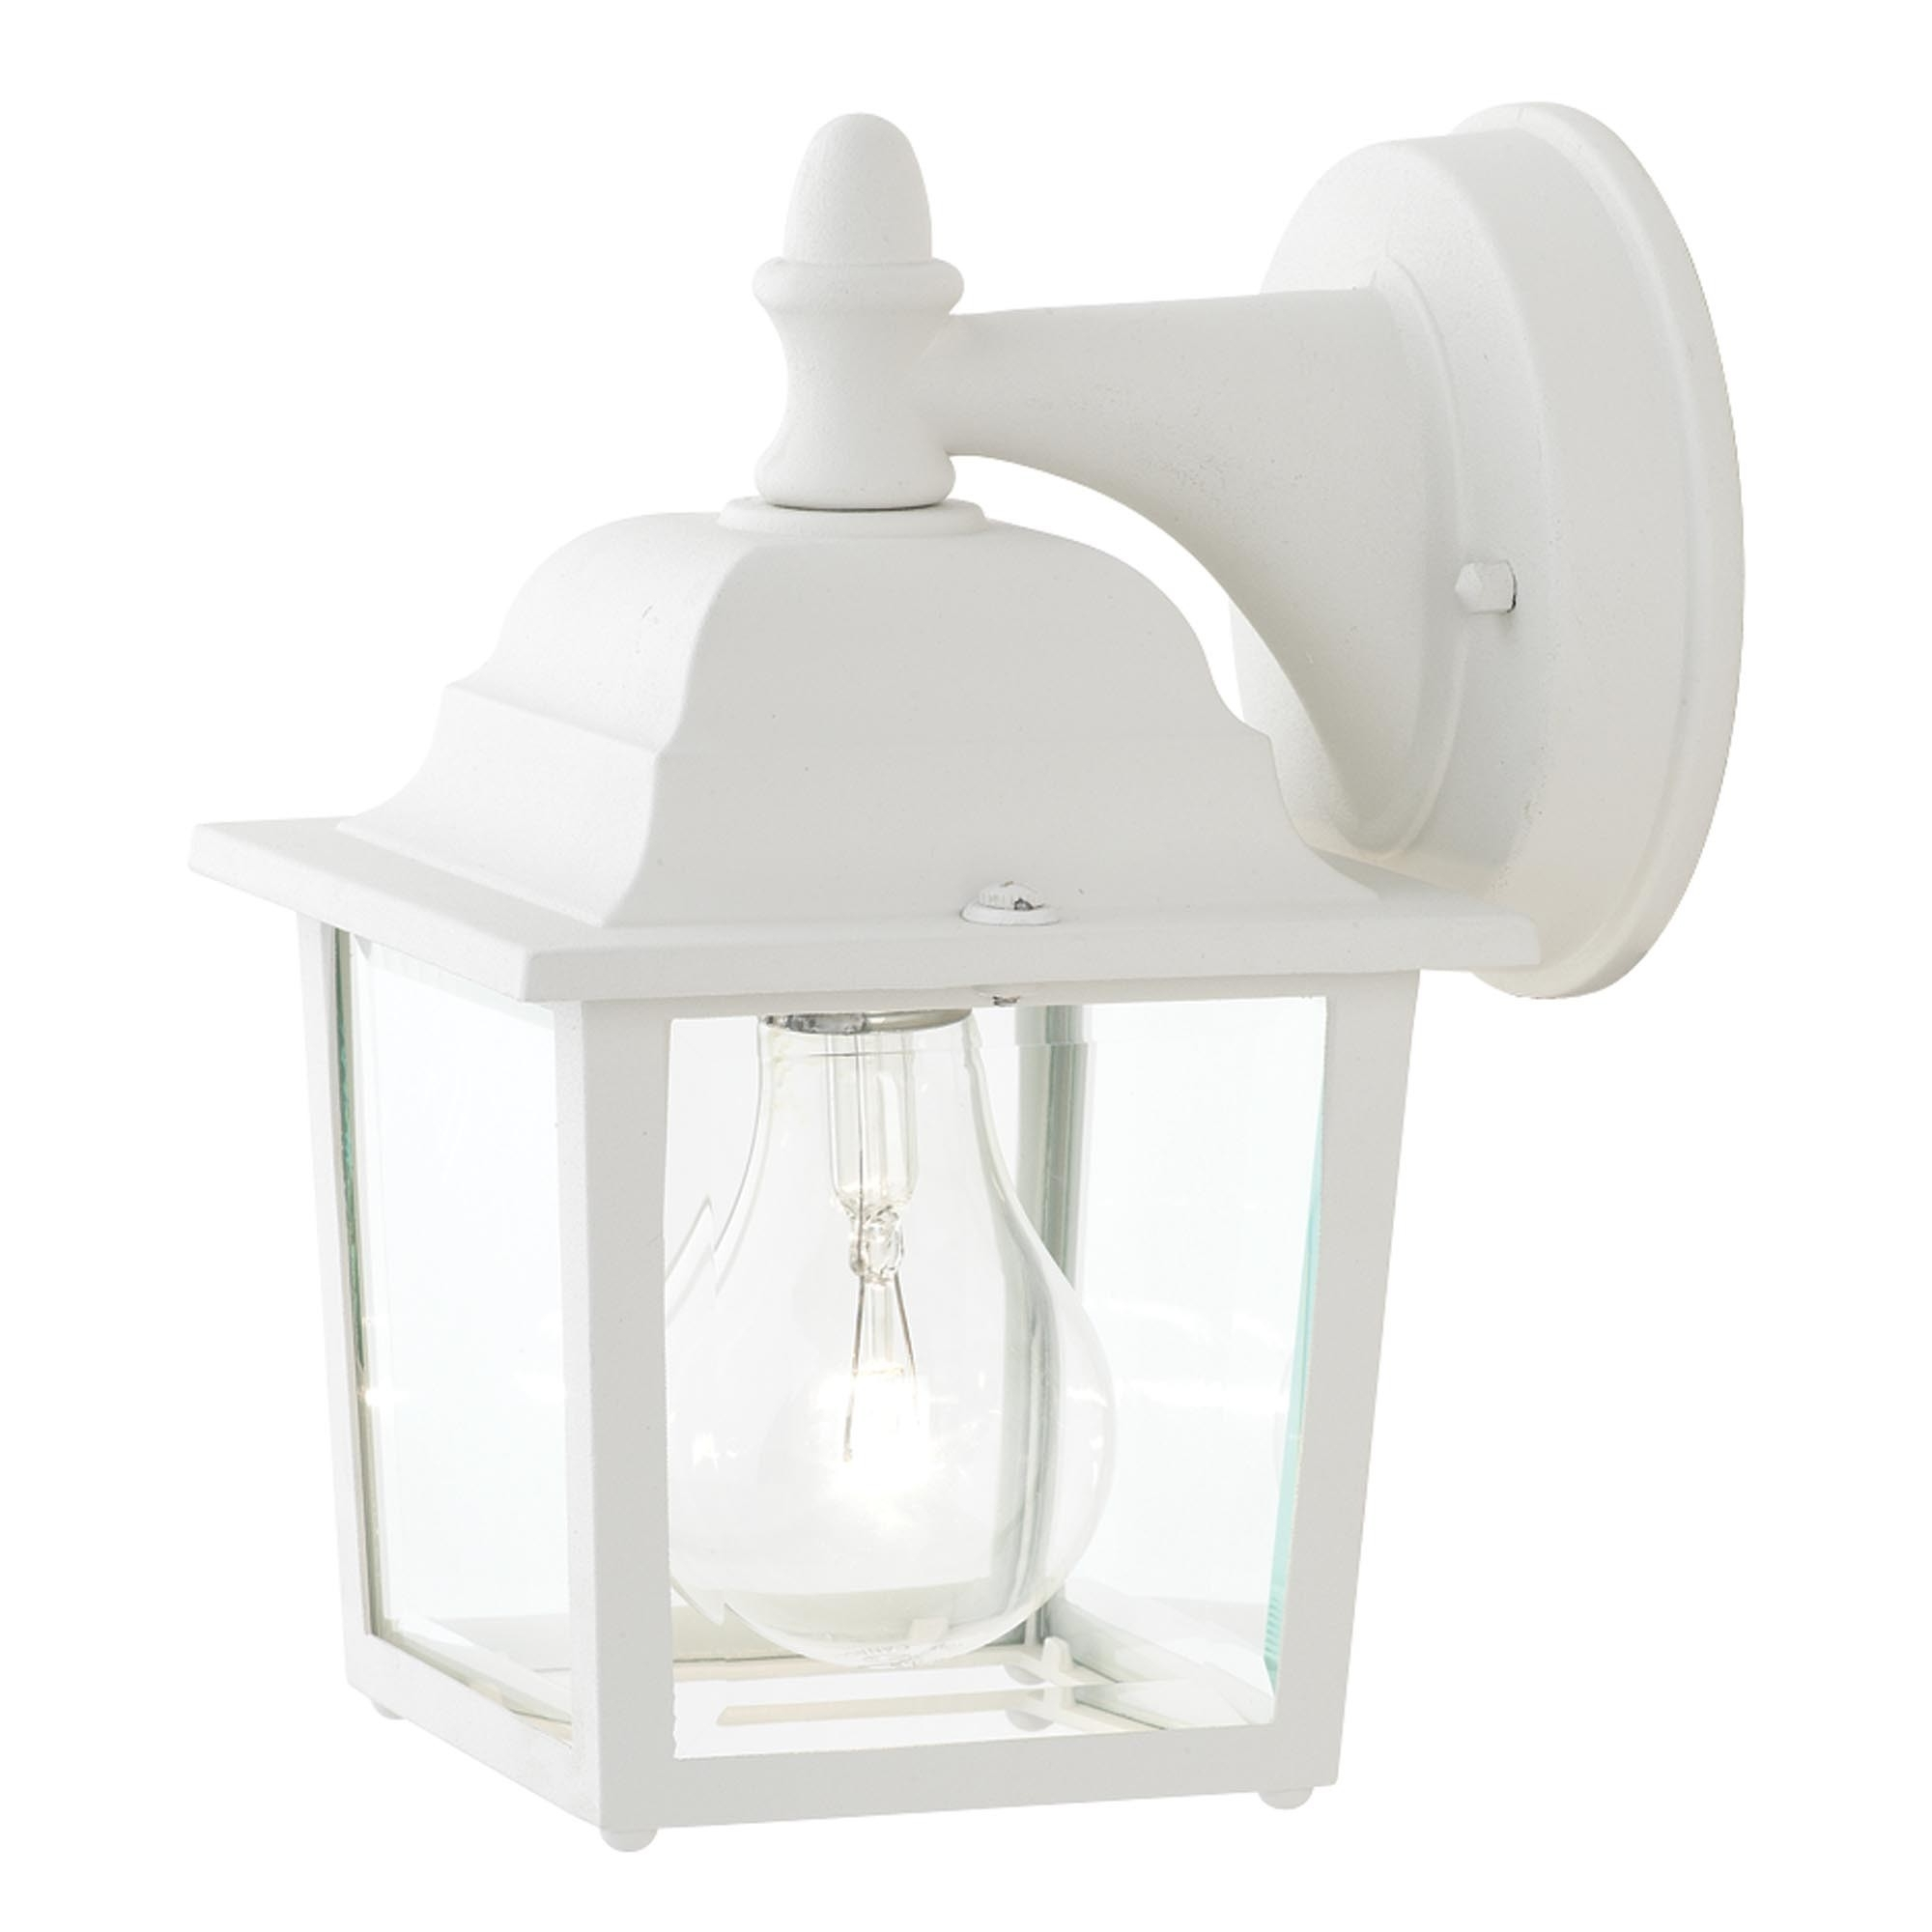 Trendy White Led Outdoor Wall Lights Intended For Light : New White Outside Wall Lights For Gas With Mount Led Light (View 13 of 20)